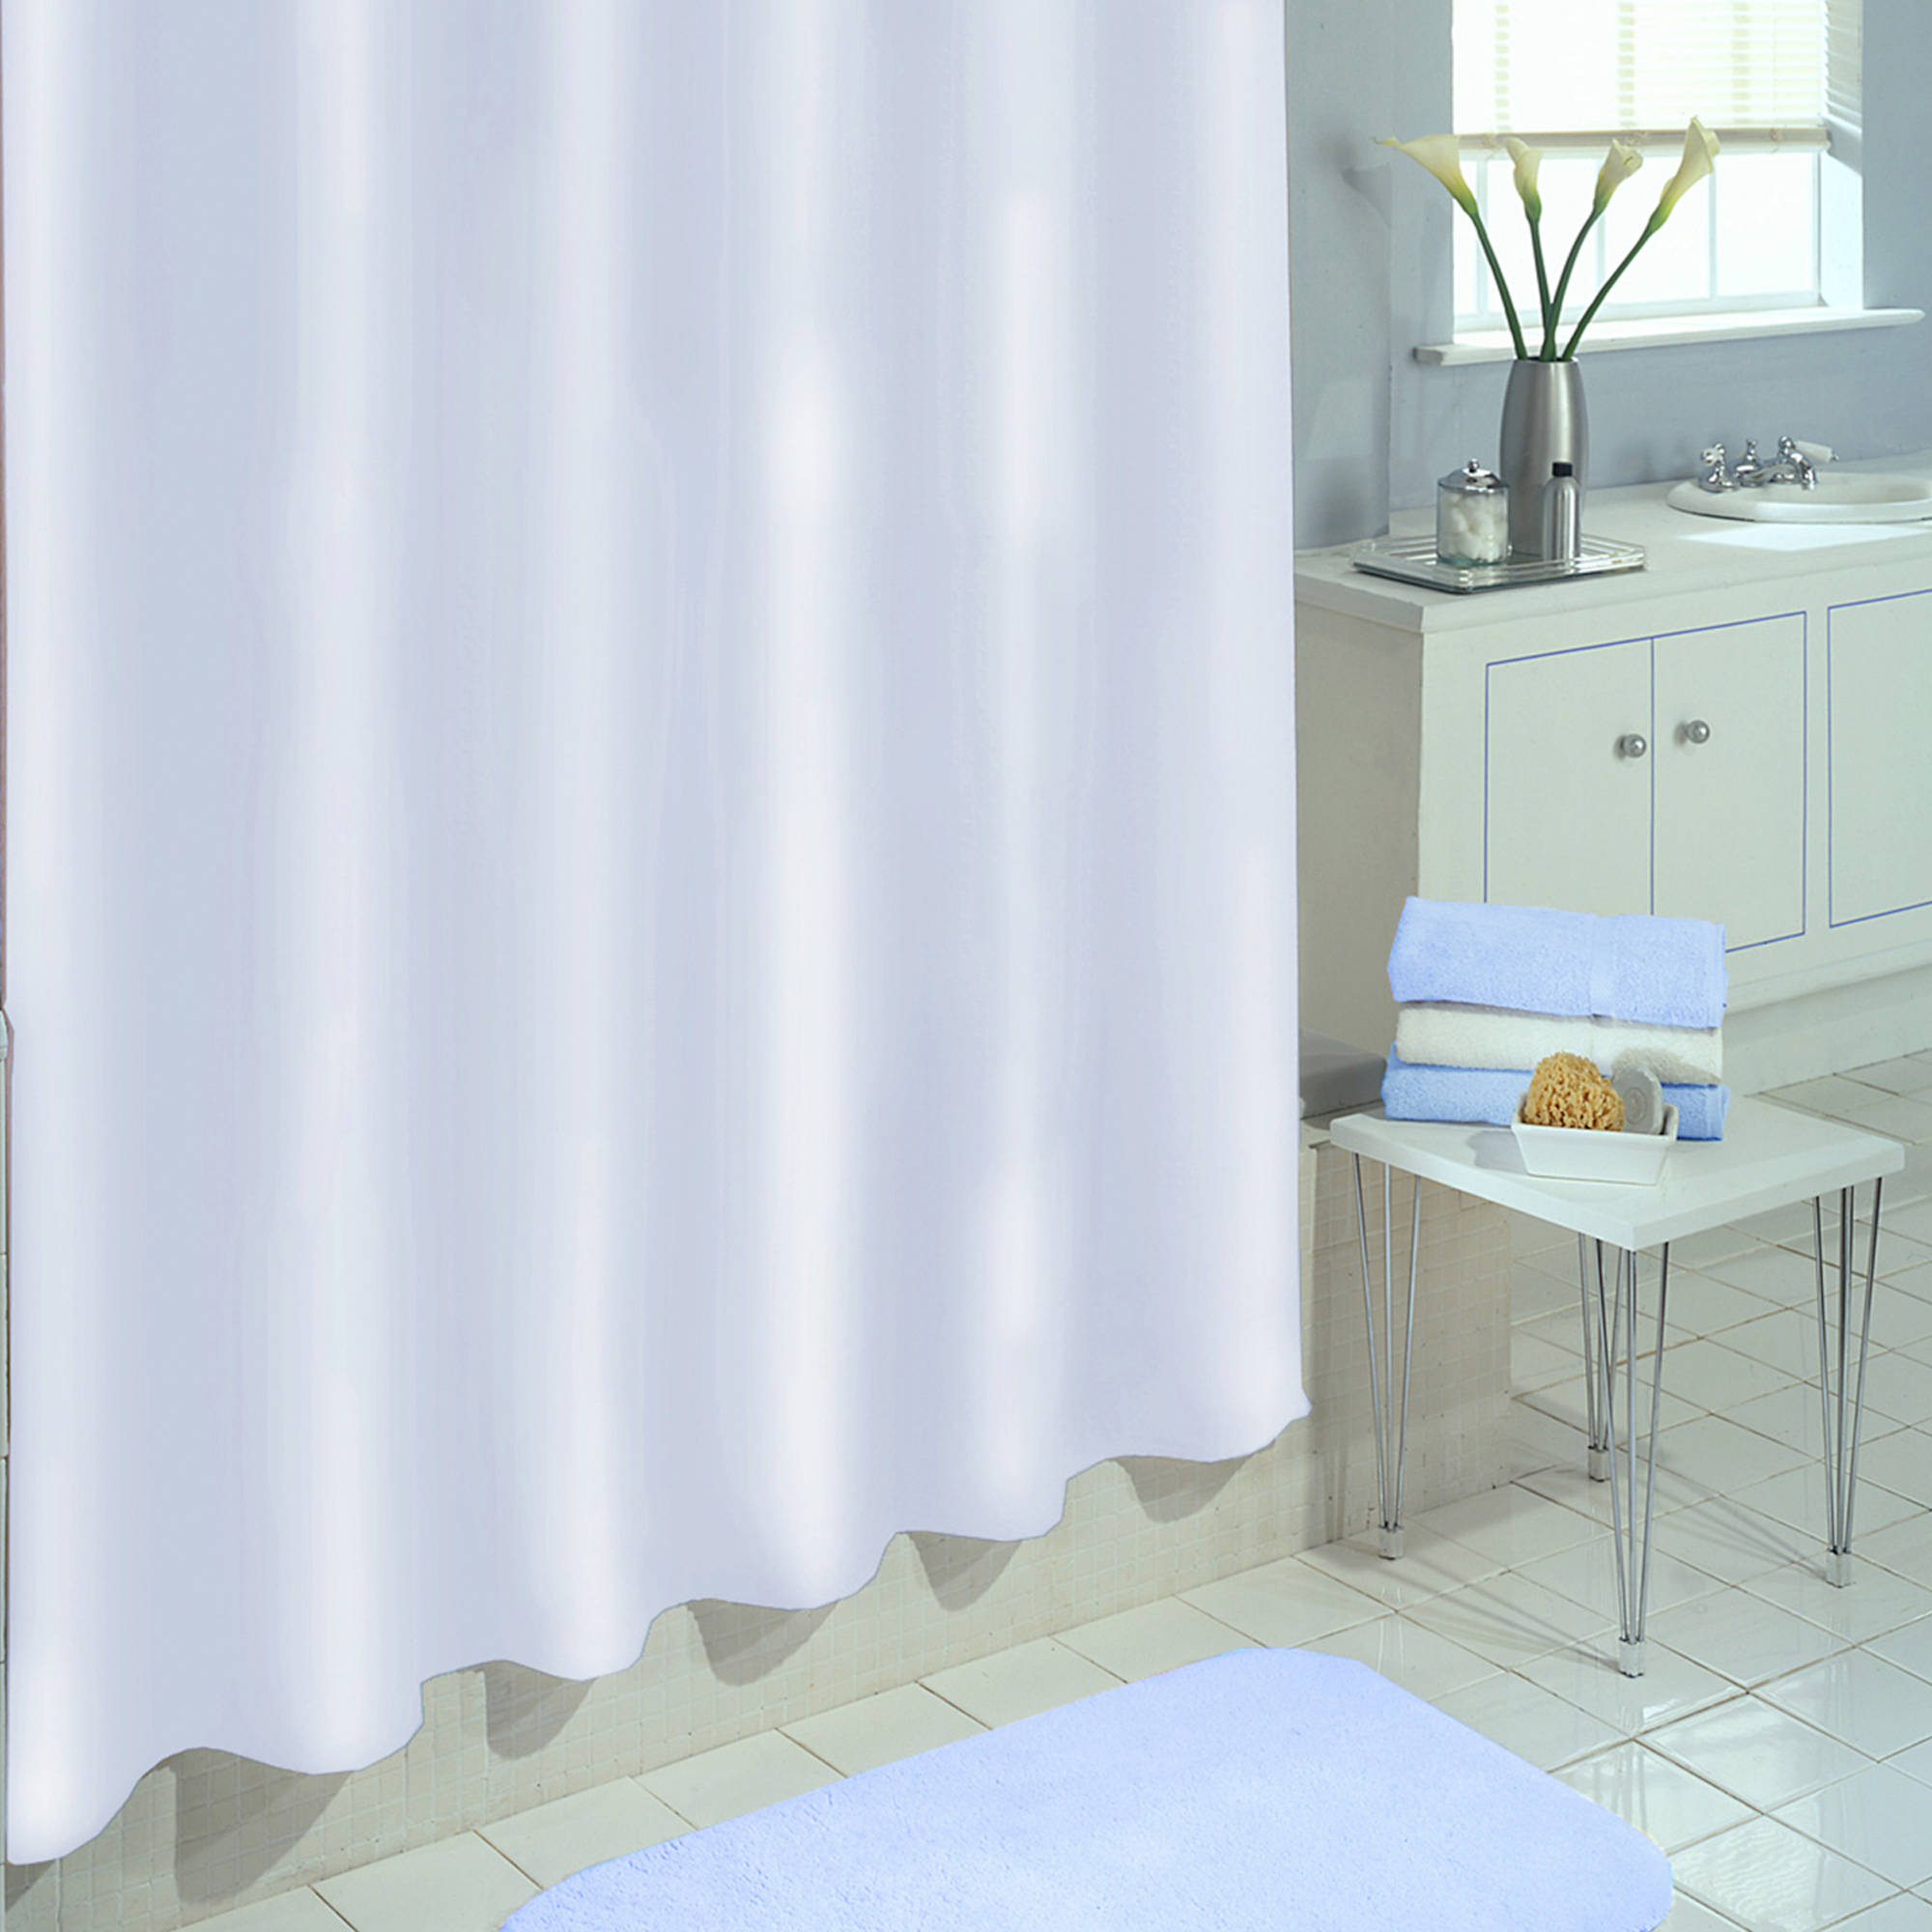 Non Toxic Vinyl Shower Curtains Shower Curtains Design for sizing 2000 X 2000